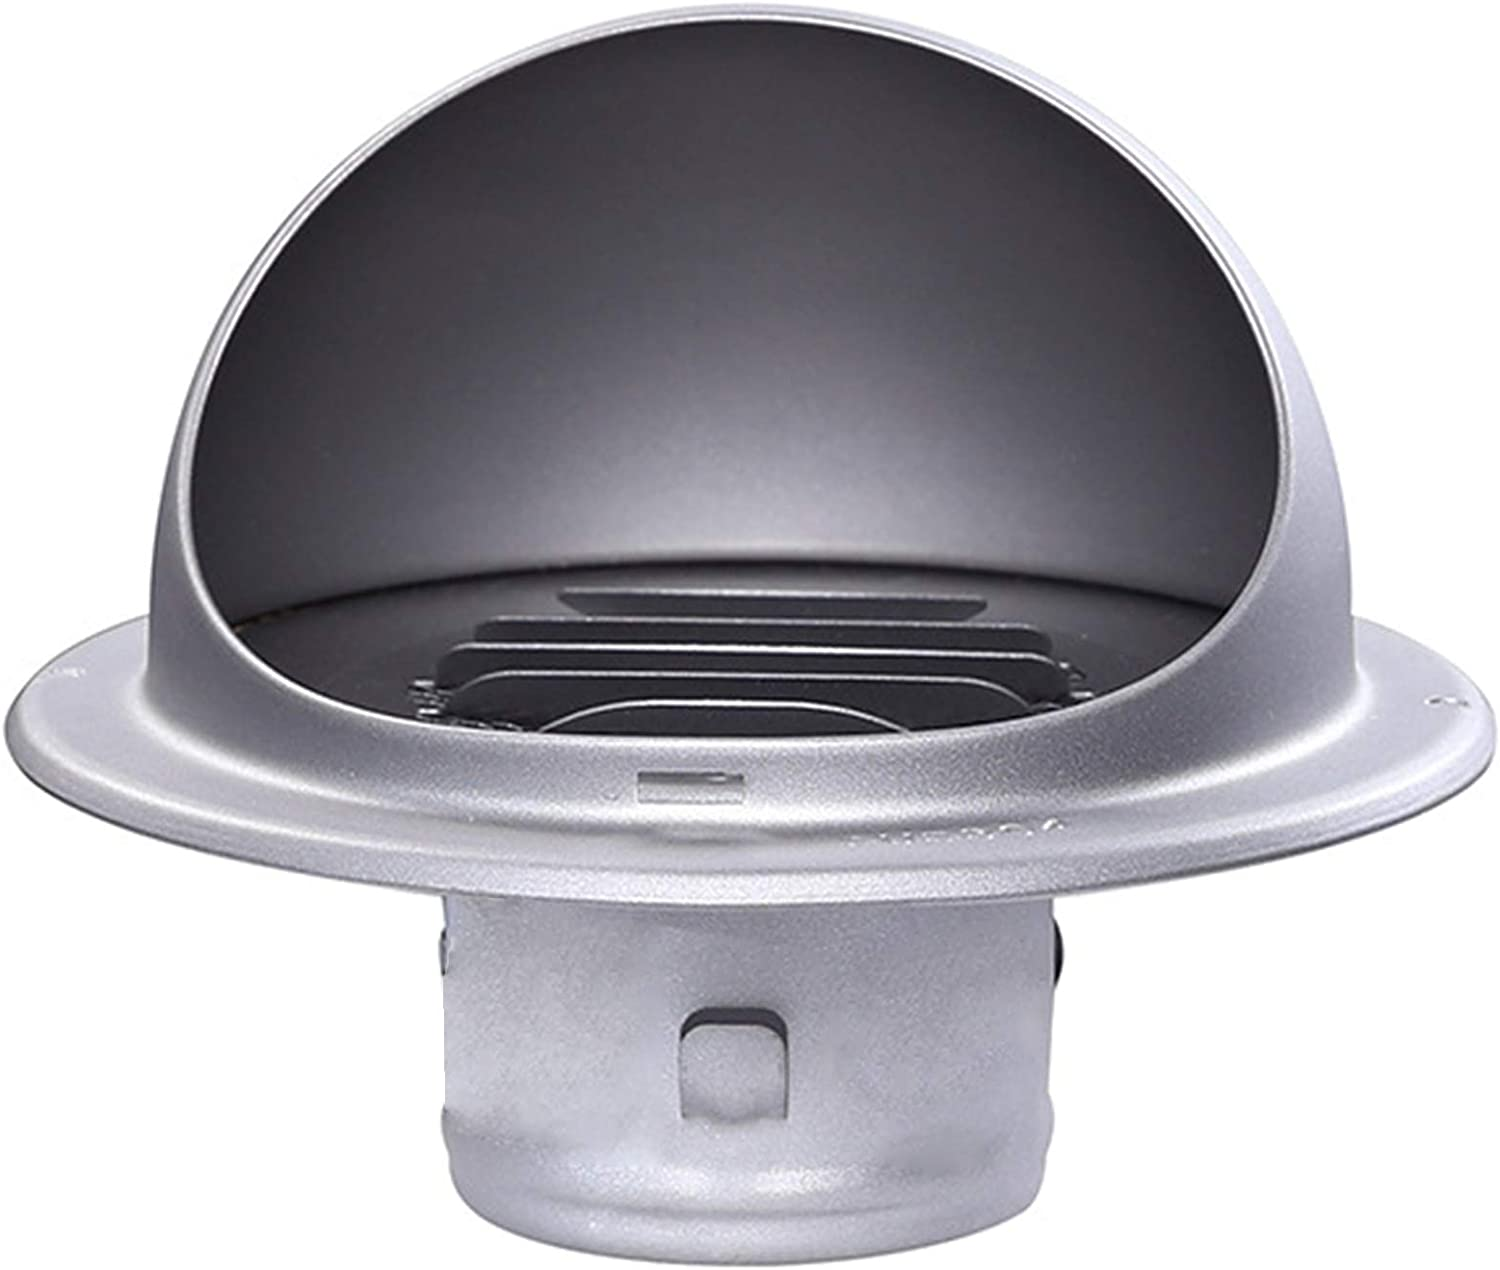 LTLJX Stainless Steel Roof Chimney Flue Cowl Pipe Rain Cover Protector Cap Ending Heating Stove Exhaust Pipe Vent,80MM